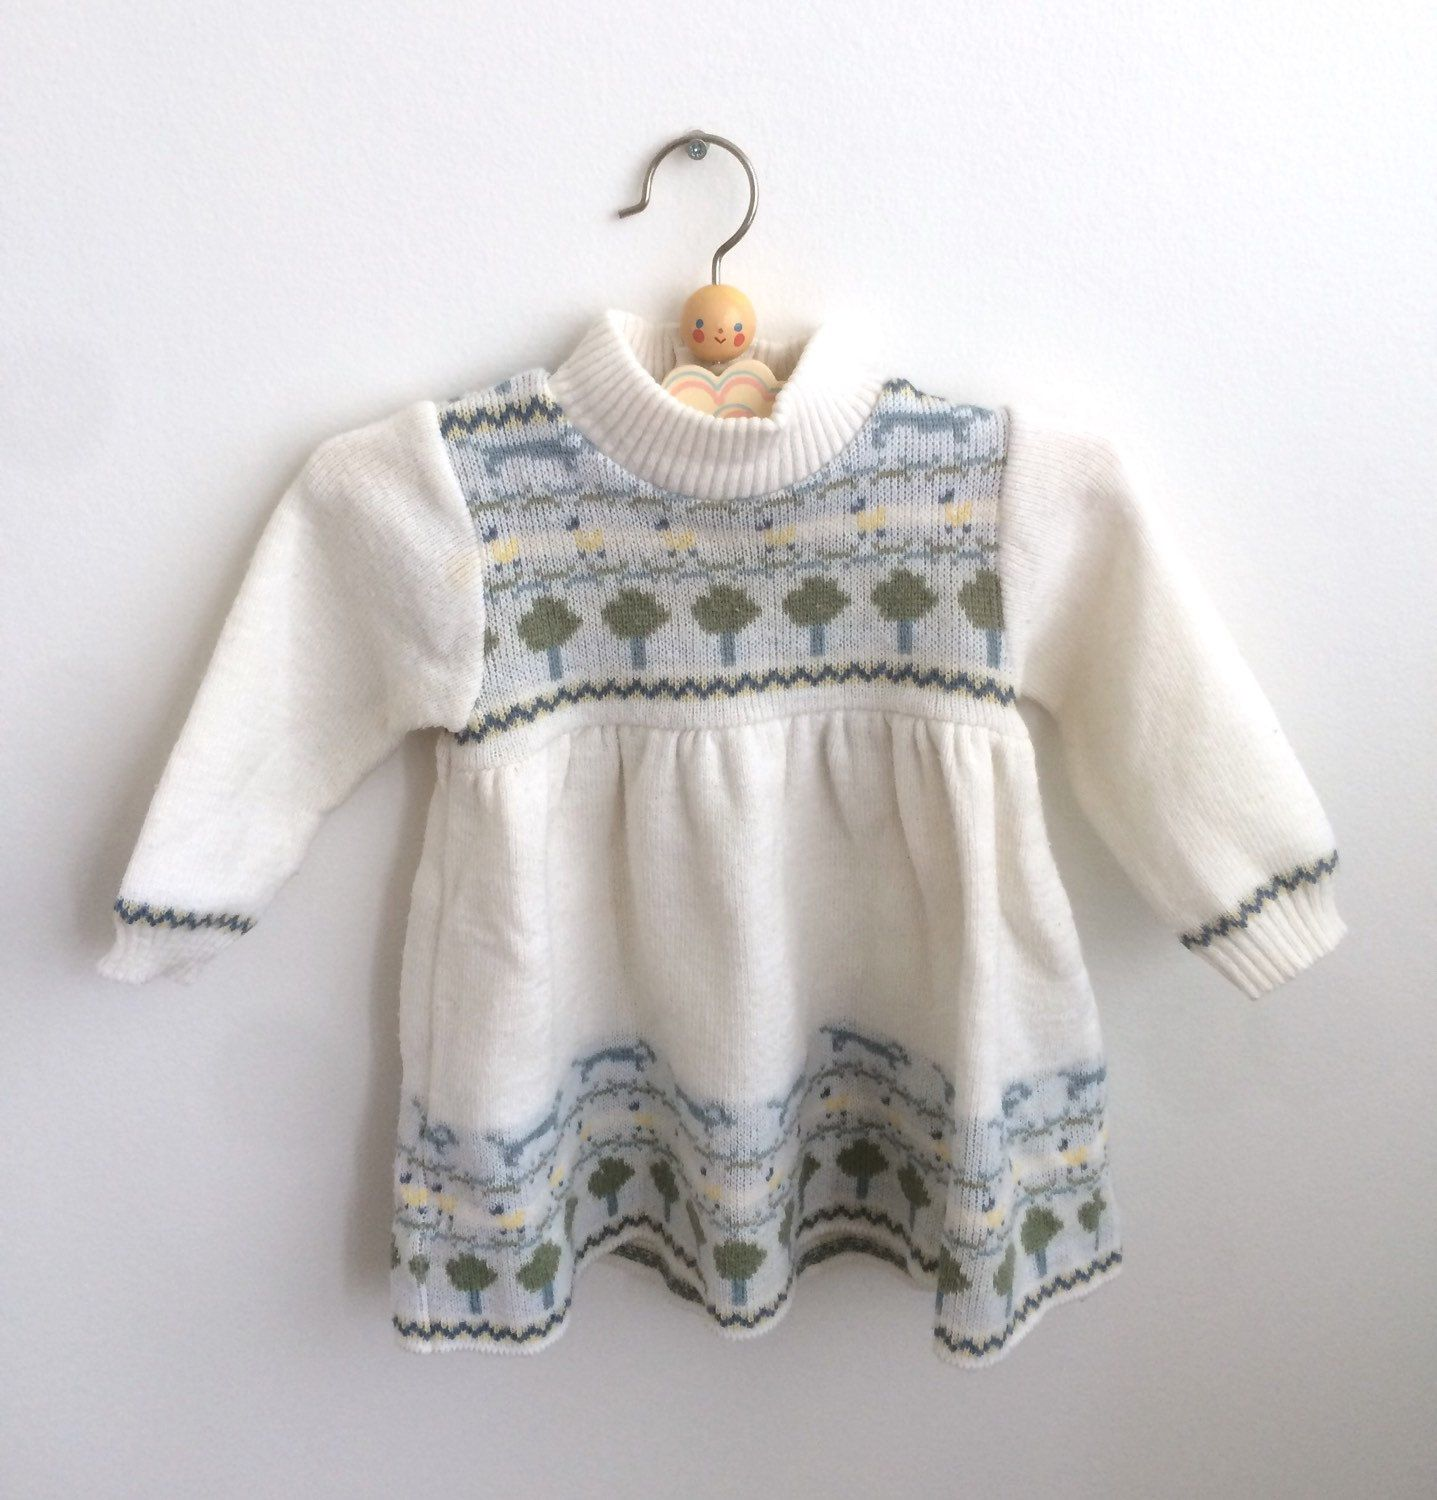 Vintage Baby Girl Dress in White Knit 6 12 months 60s French Little